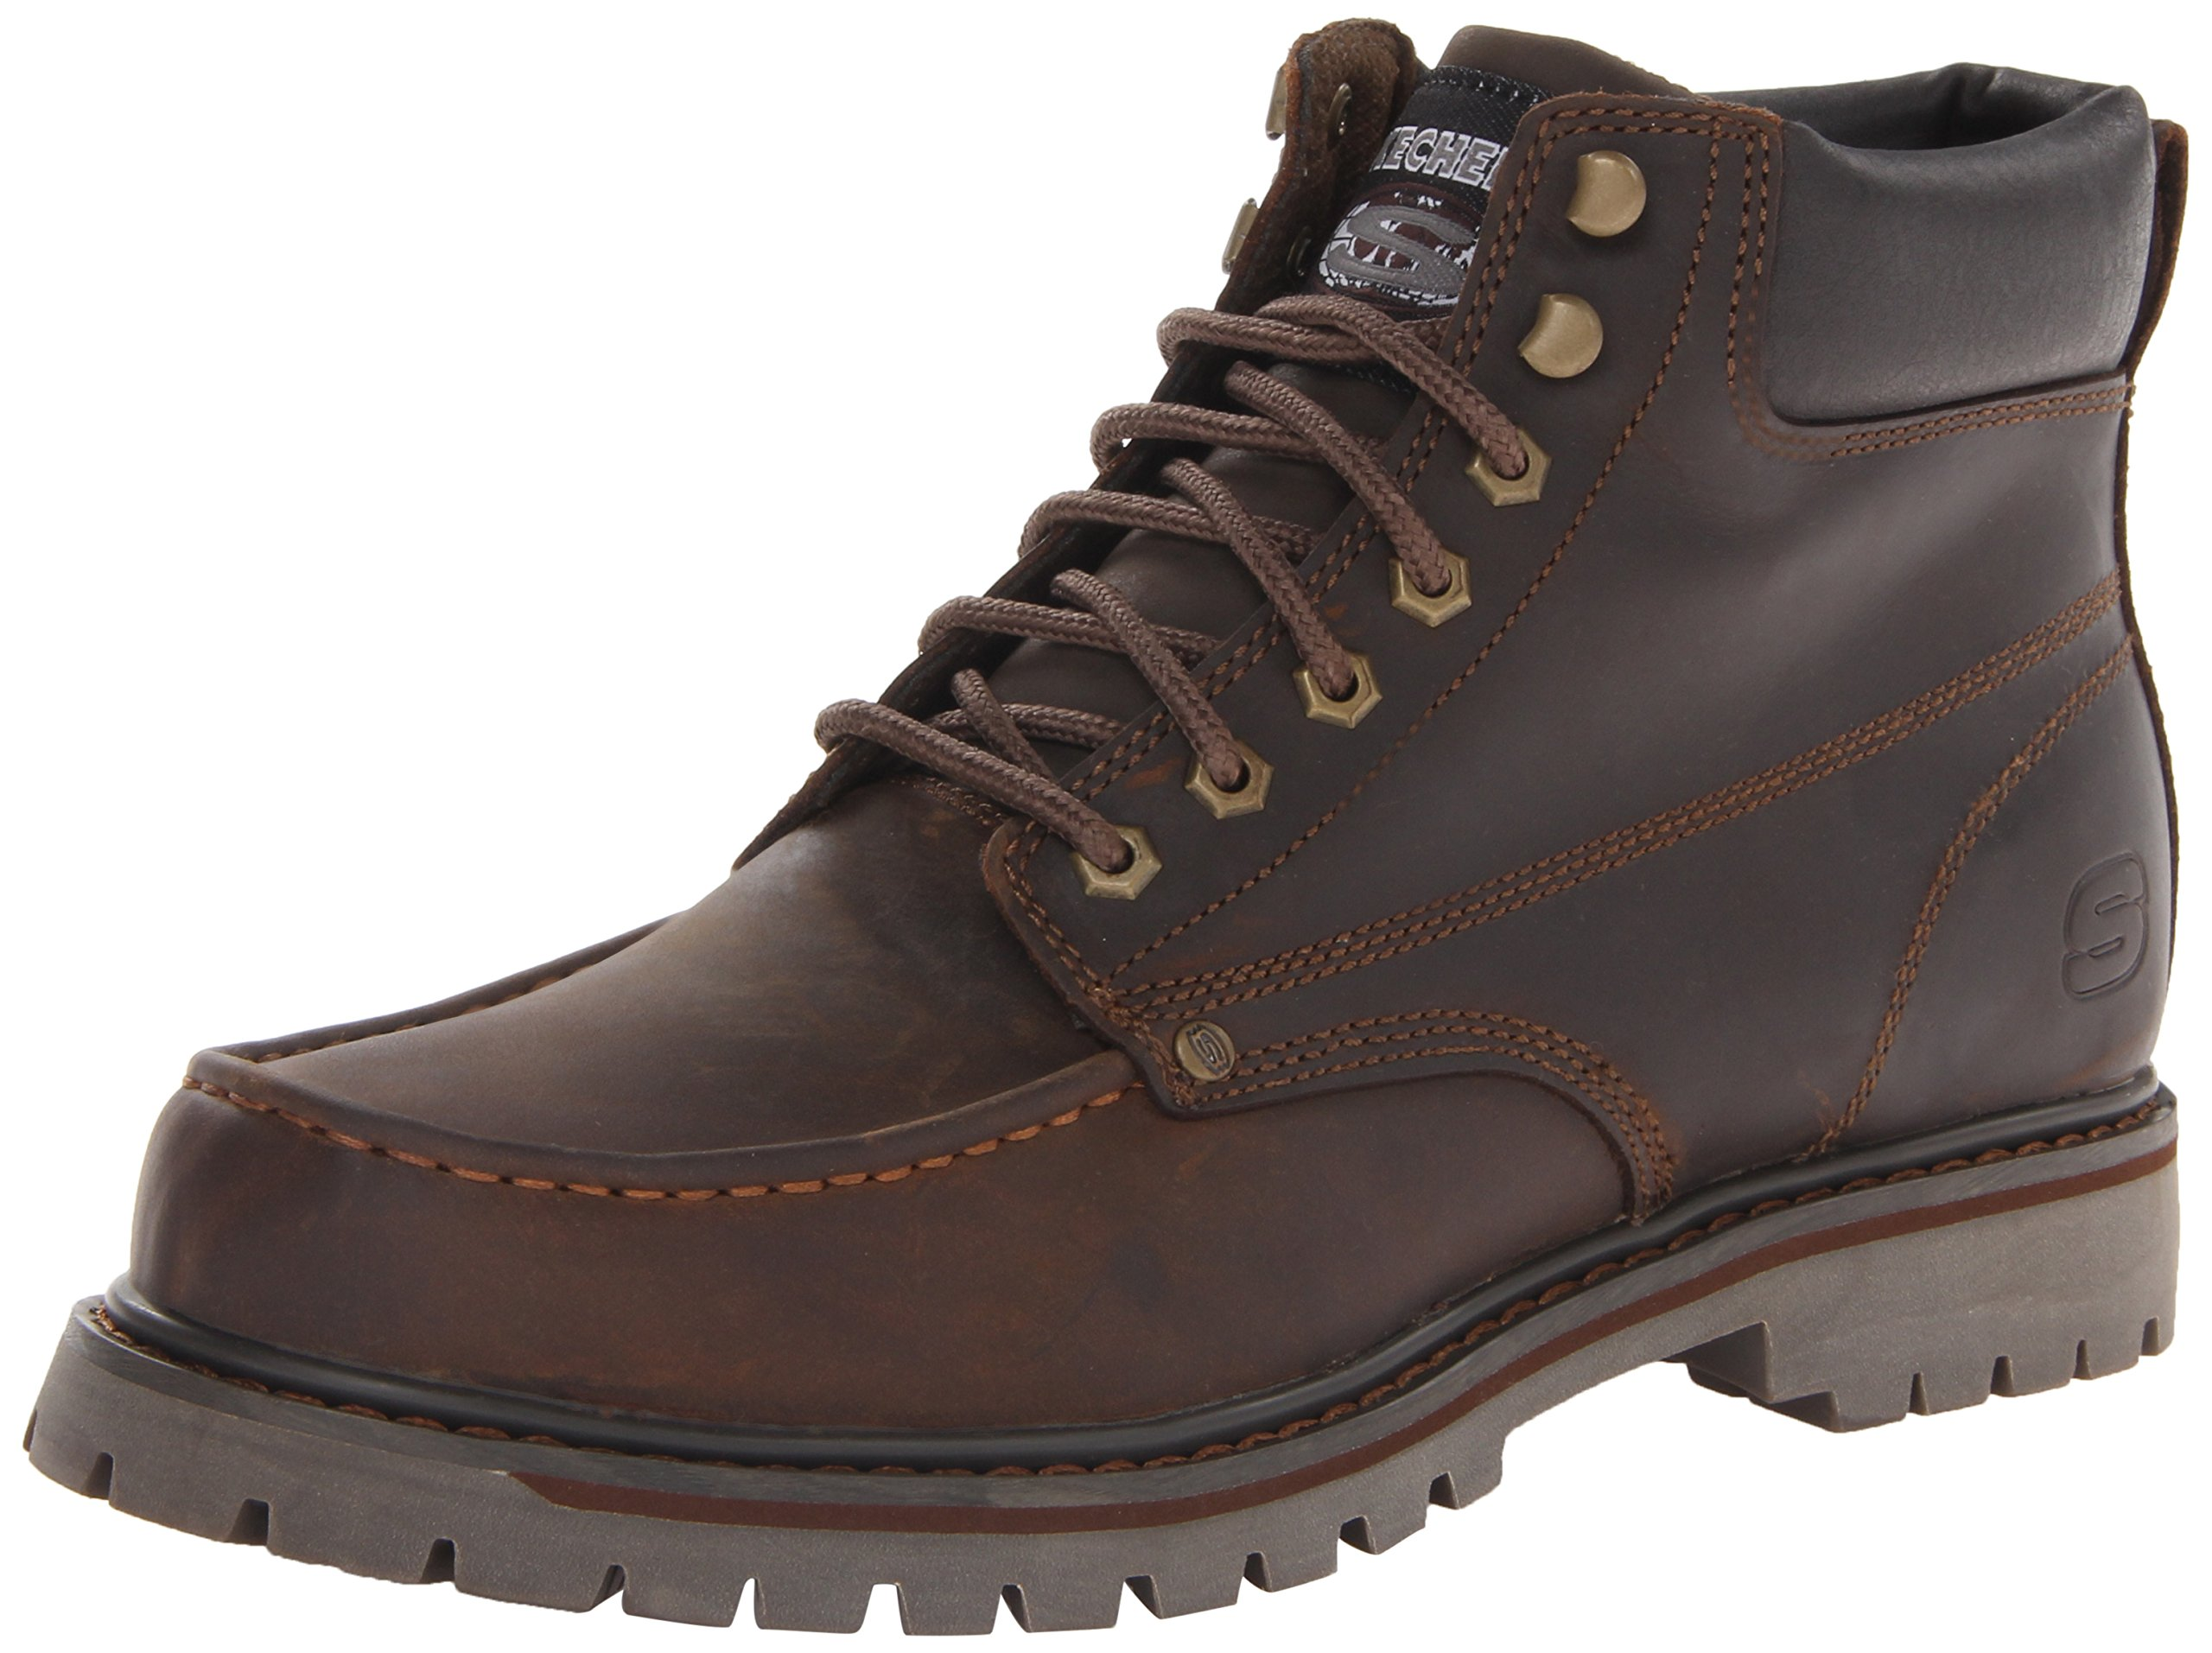 Skechers  Men's Bruiser Chukka Utility Work Boot,Dark Brown,11 M US